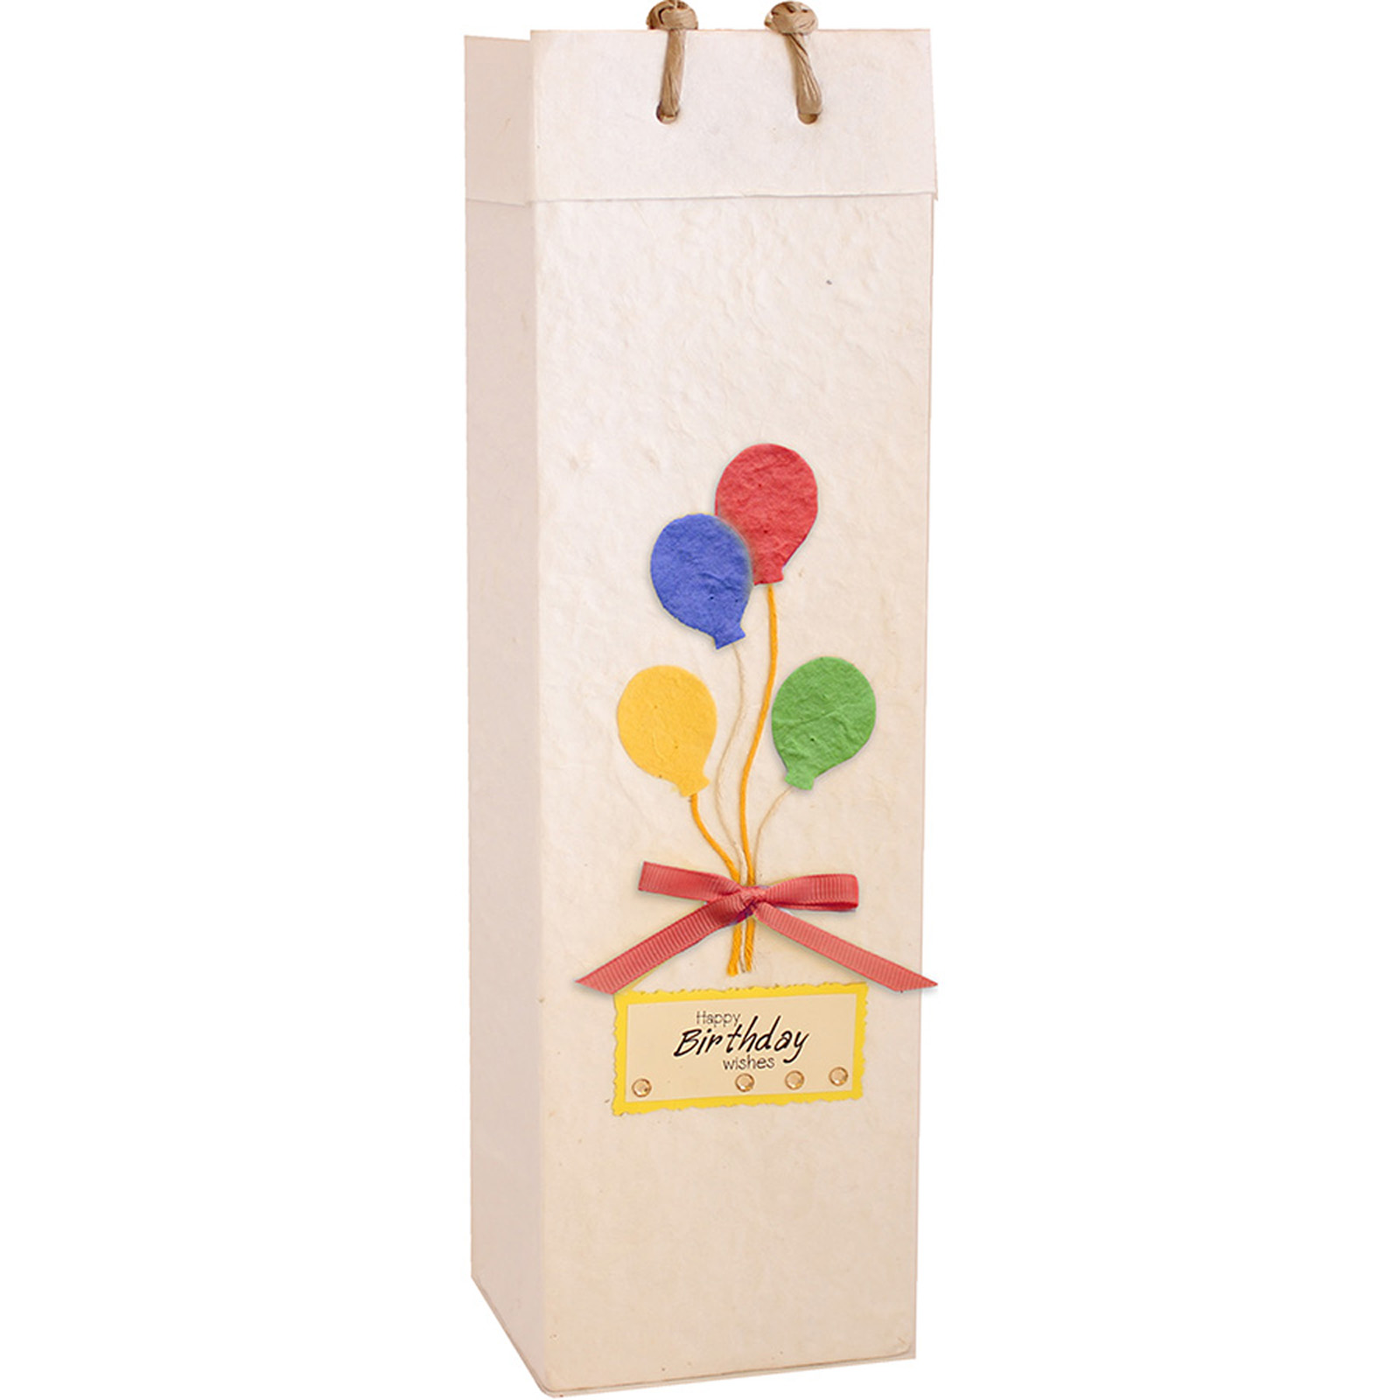 Olive Oil Gift Bags - Happy Birthday - Georgetown Olive Oil Co.